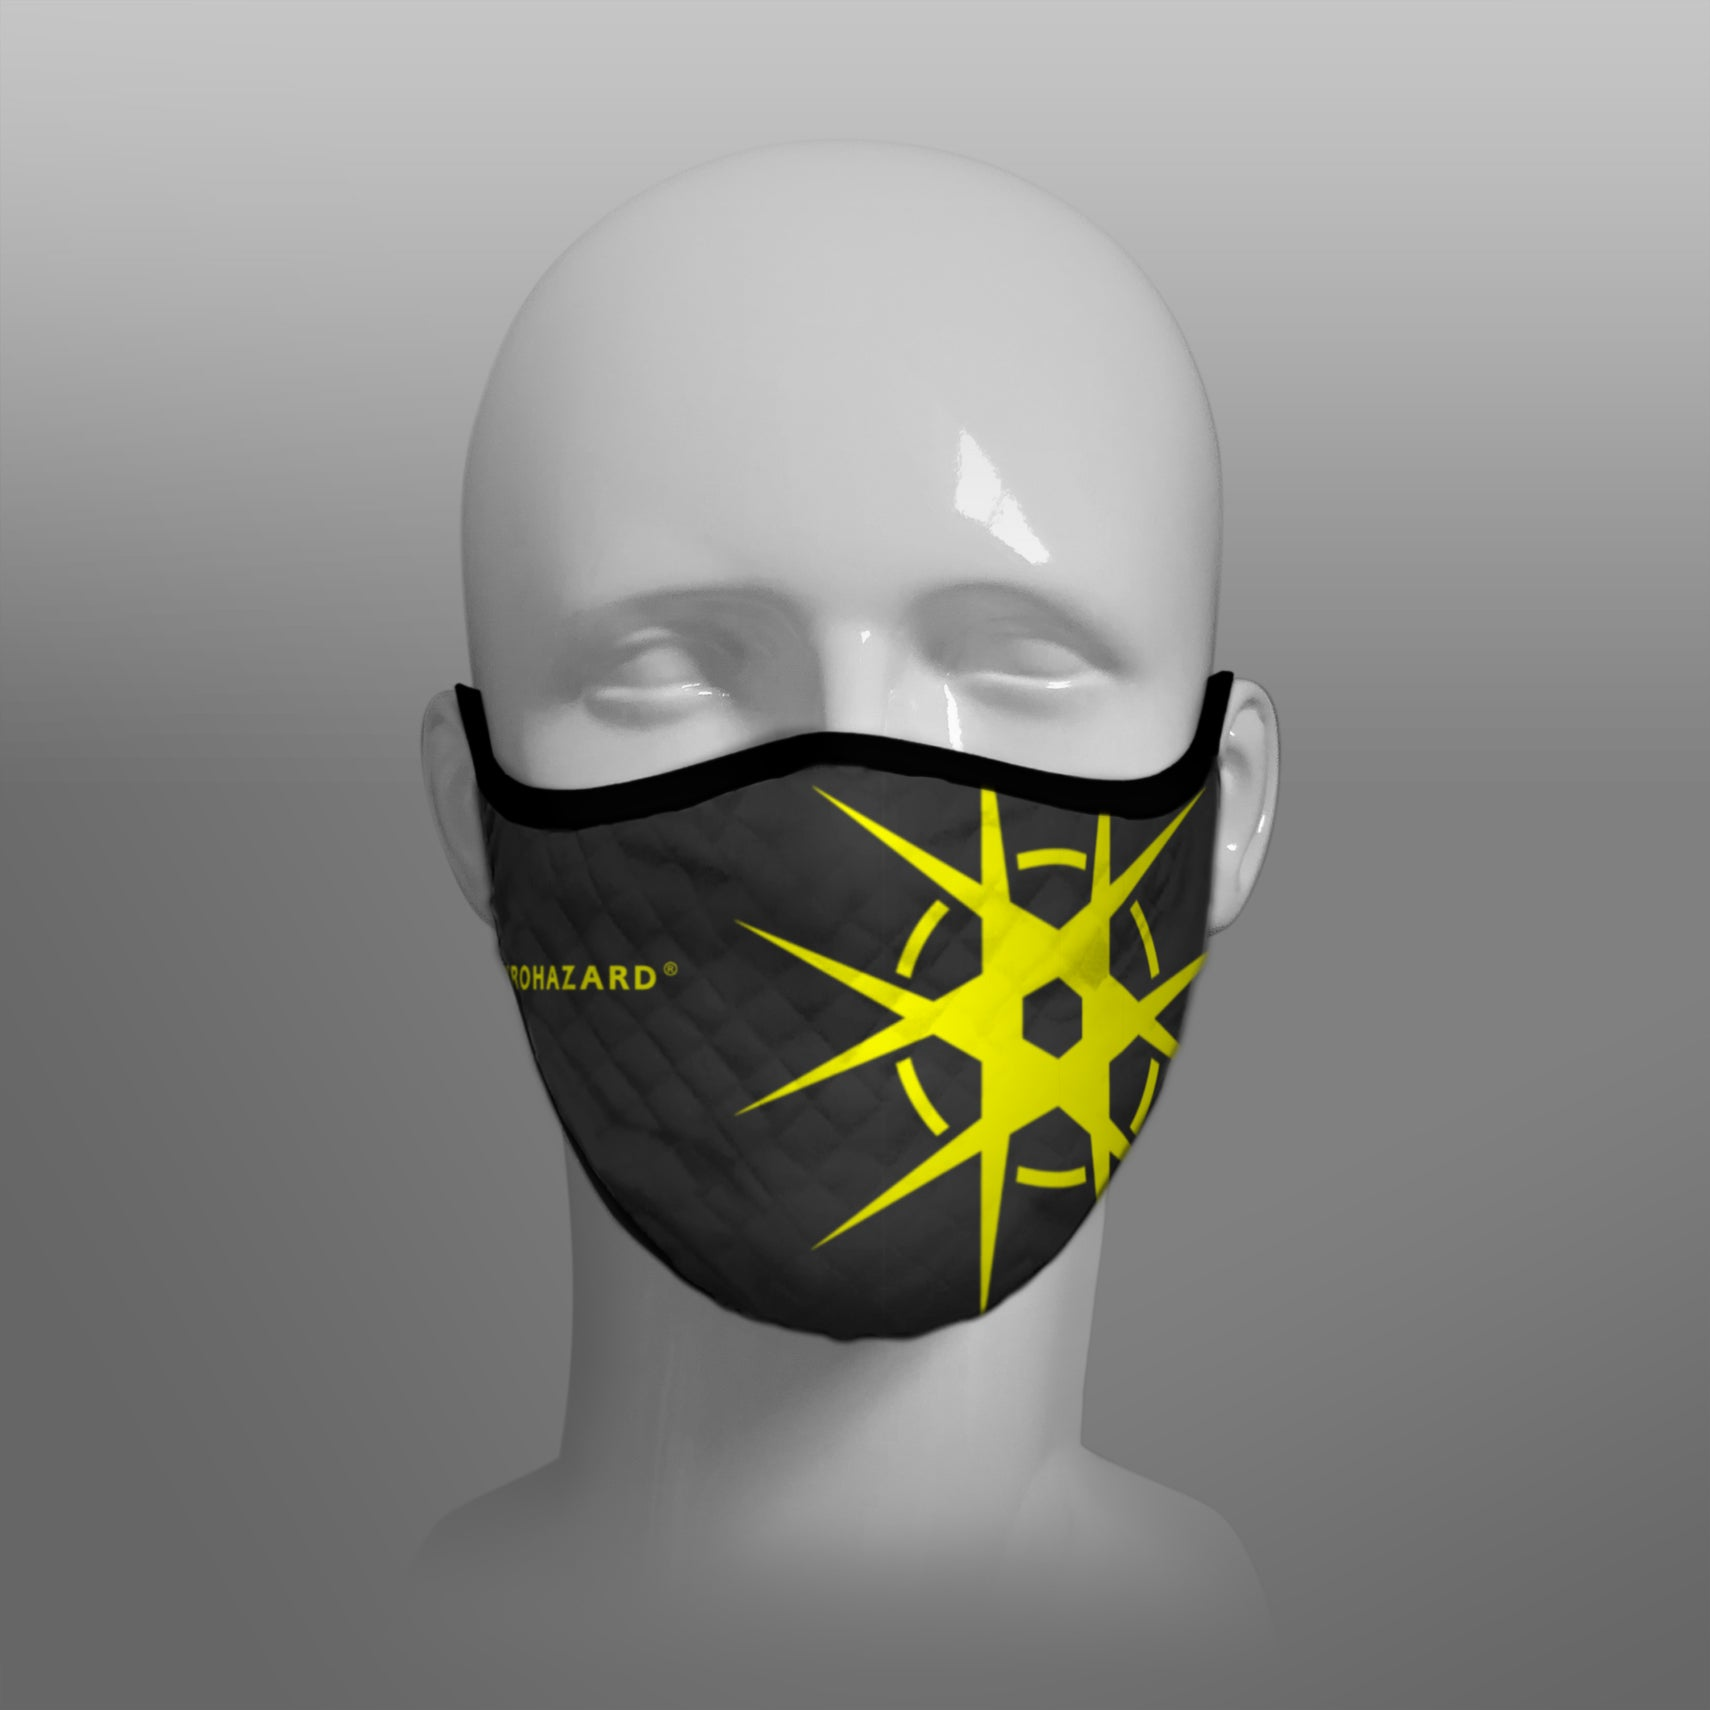 Virohazard tartan face mask facemask face-mask covid - 19 - pandemic Coronavirus - Nicola Sturgeon - Scottish cloth face covering filter - by Steven Patrick Sim the Tartan Artisan - Stevie Tartan Guy - black with yellow registered trademark logo